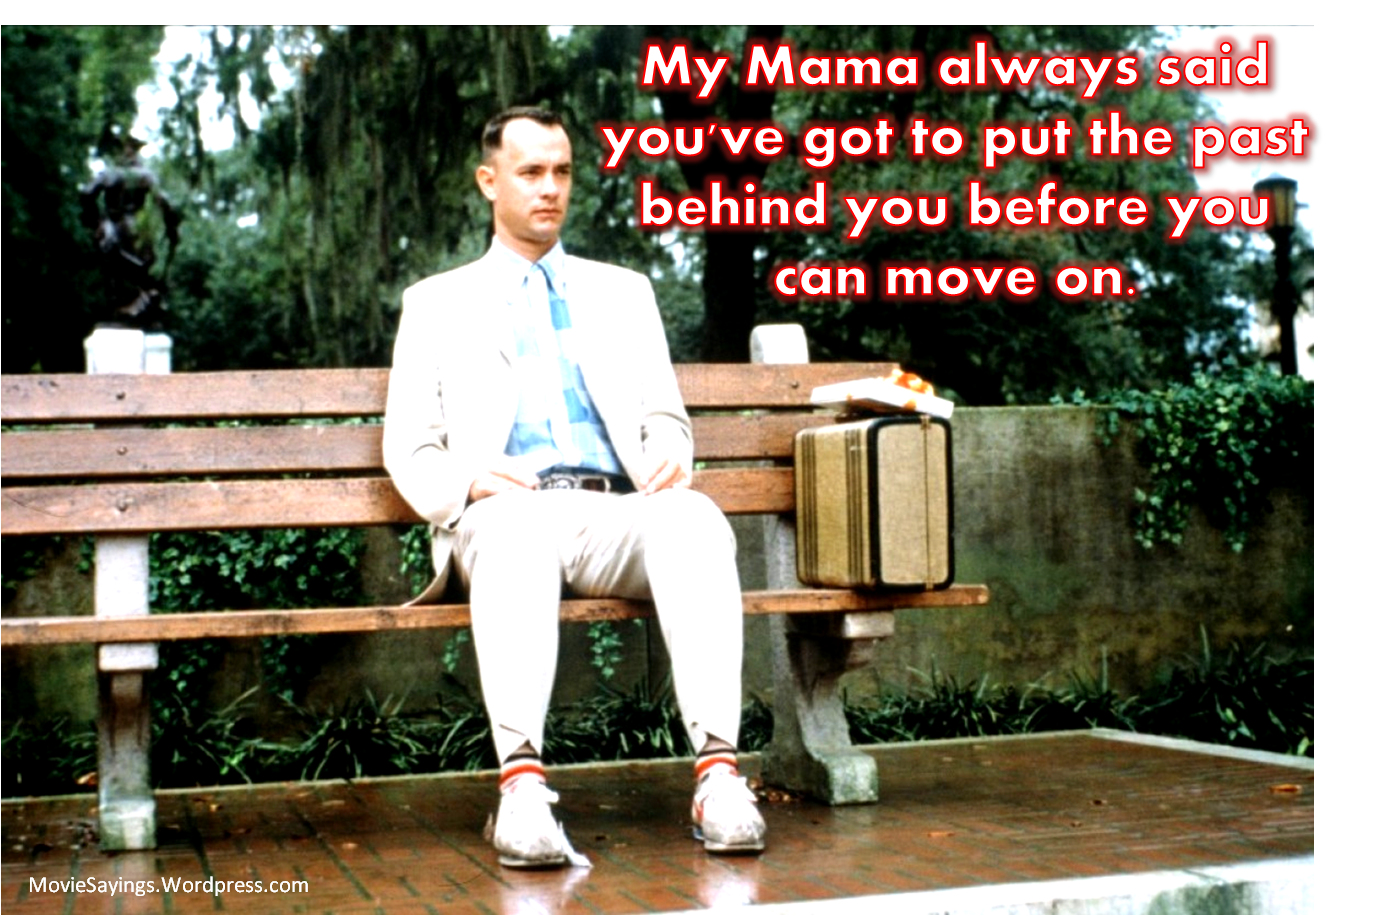 Forrest Gump: My Mama always said you've got to put the past behind you before you can move on.